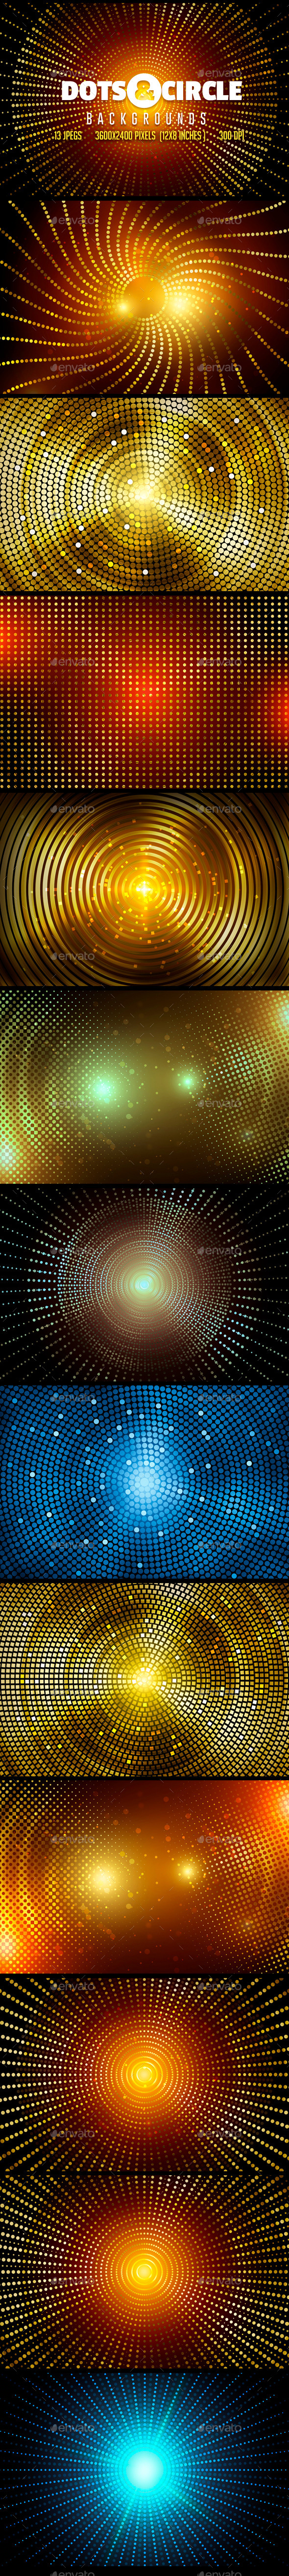 GraphicRiver Dots & Circle Backgrounds 10032062